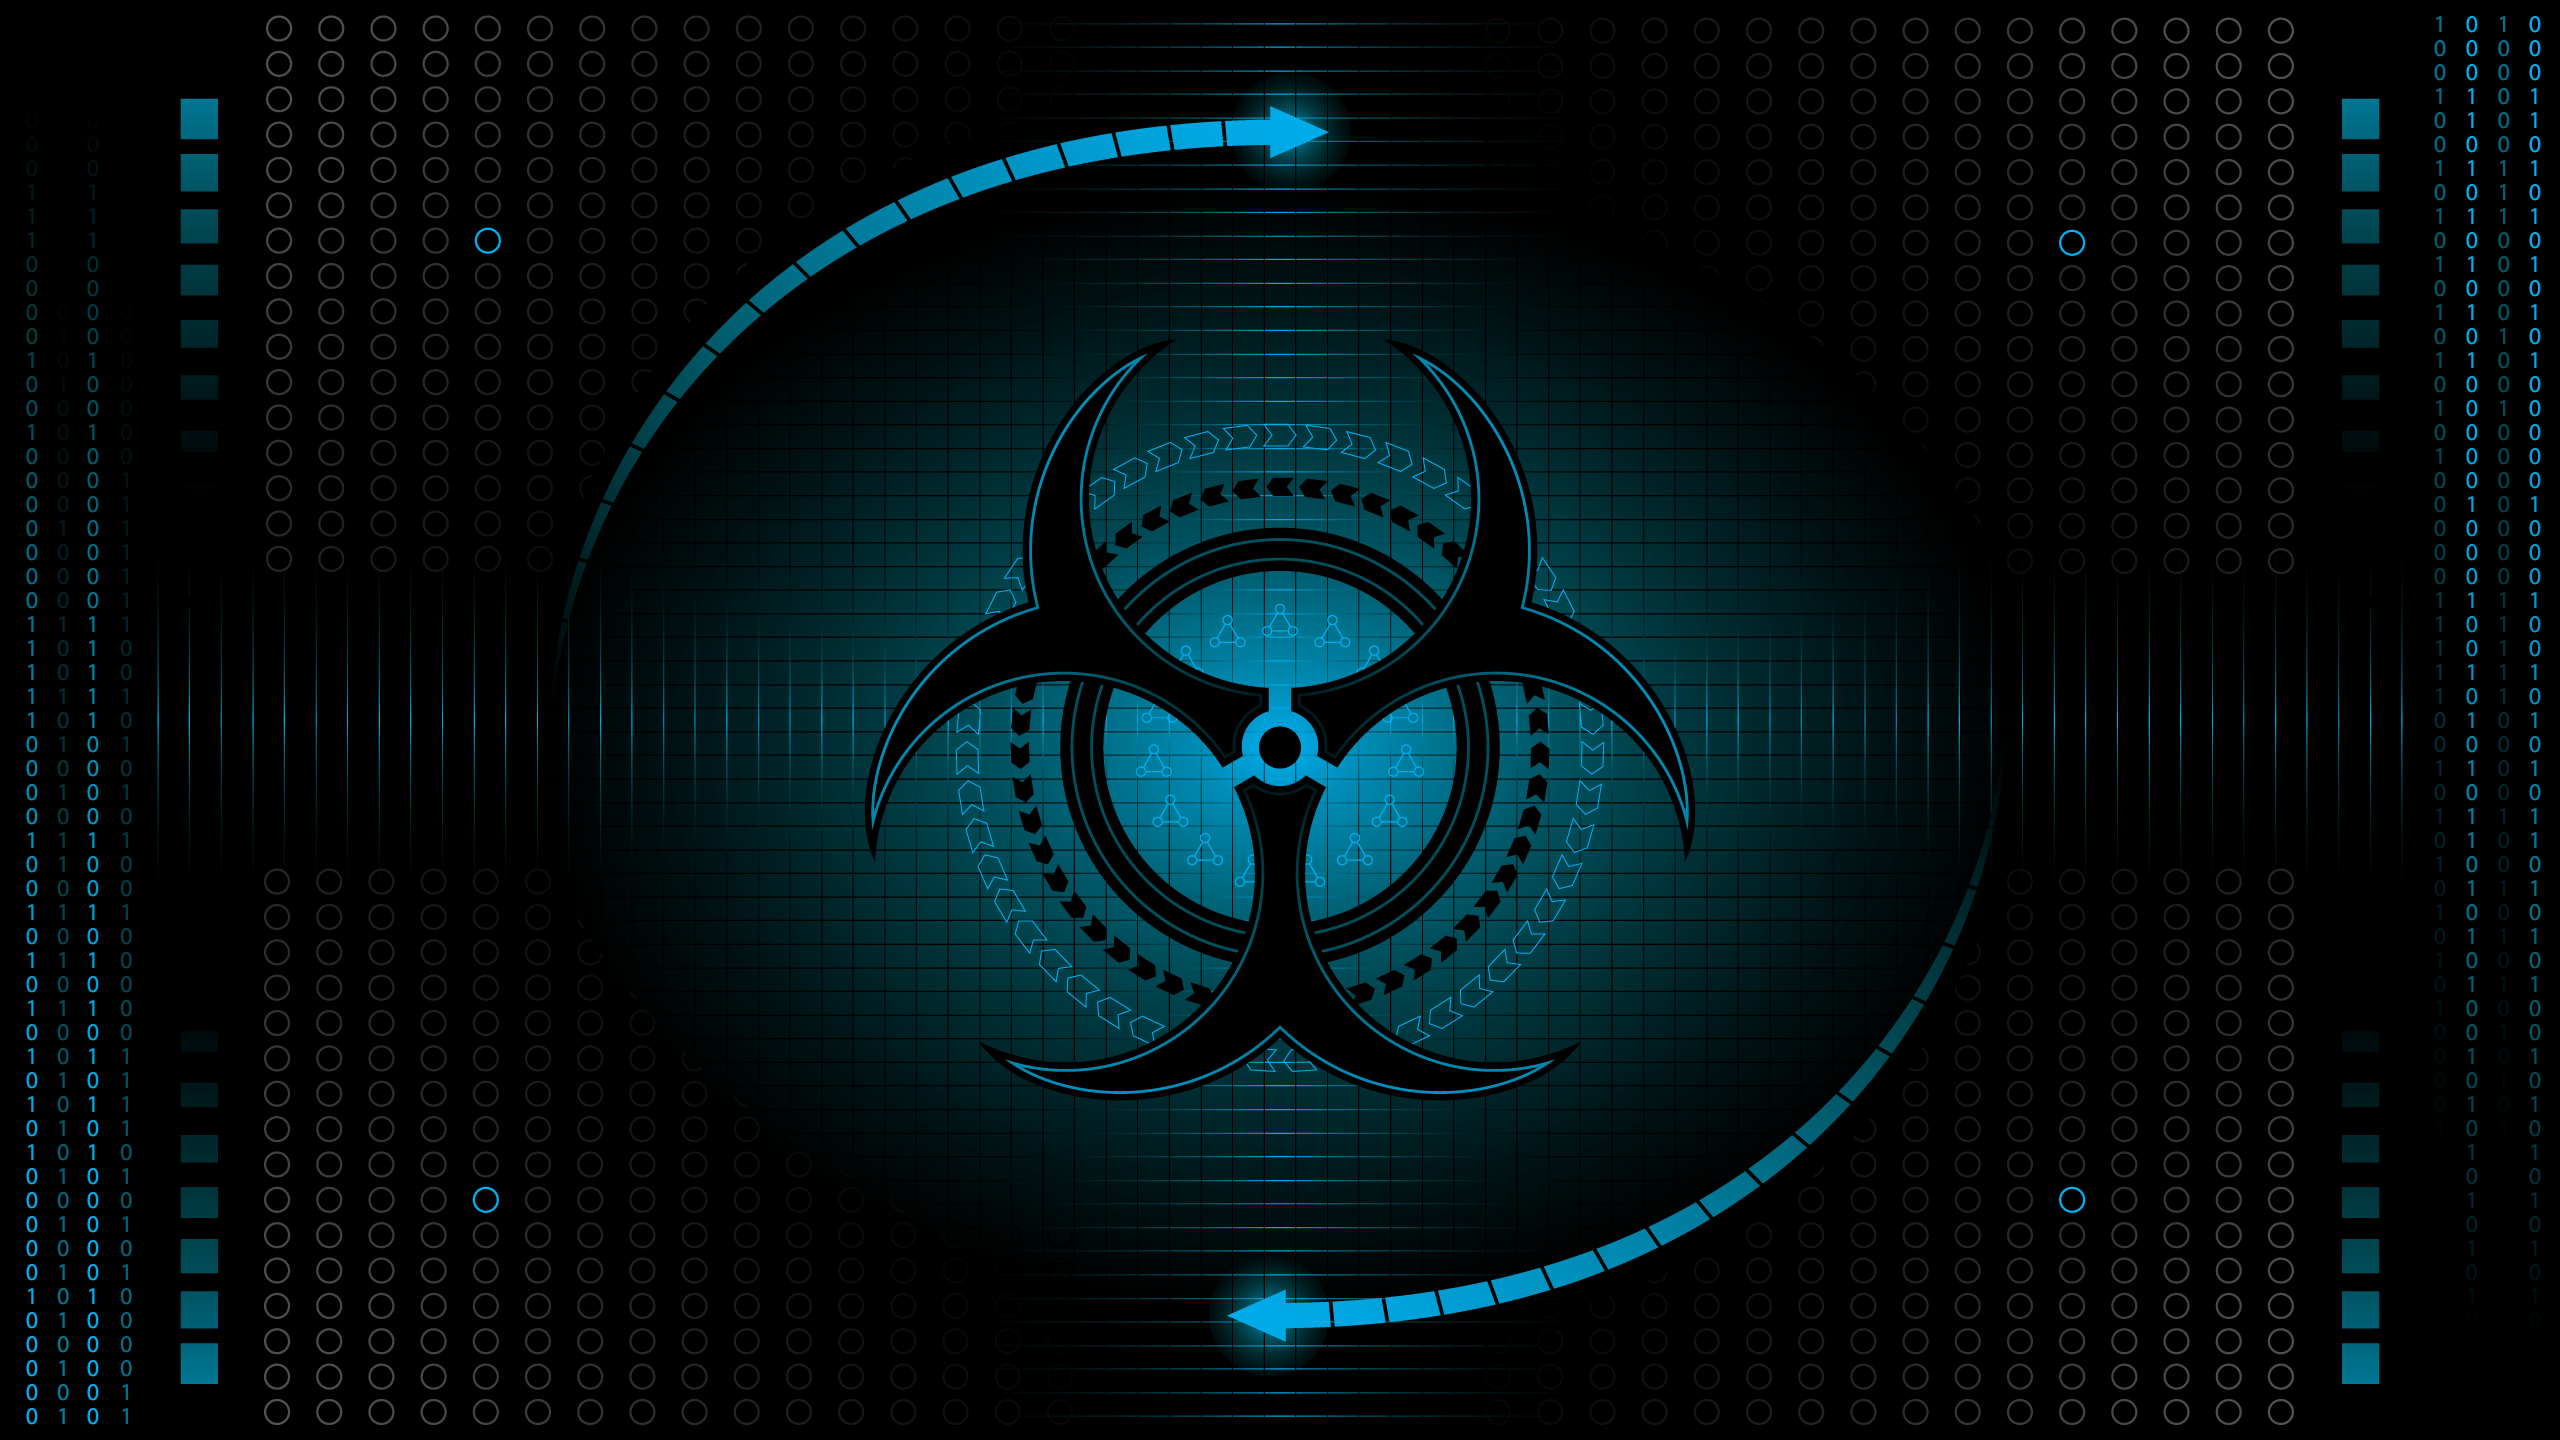 Sci Fi Iphone Wallpaper Biohazard Hd Wallpaper Background Image 2560x1440 Id